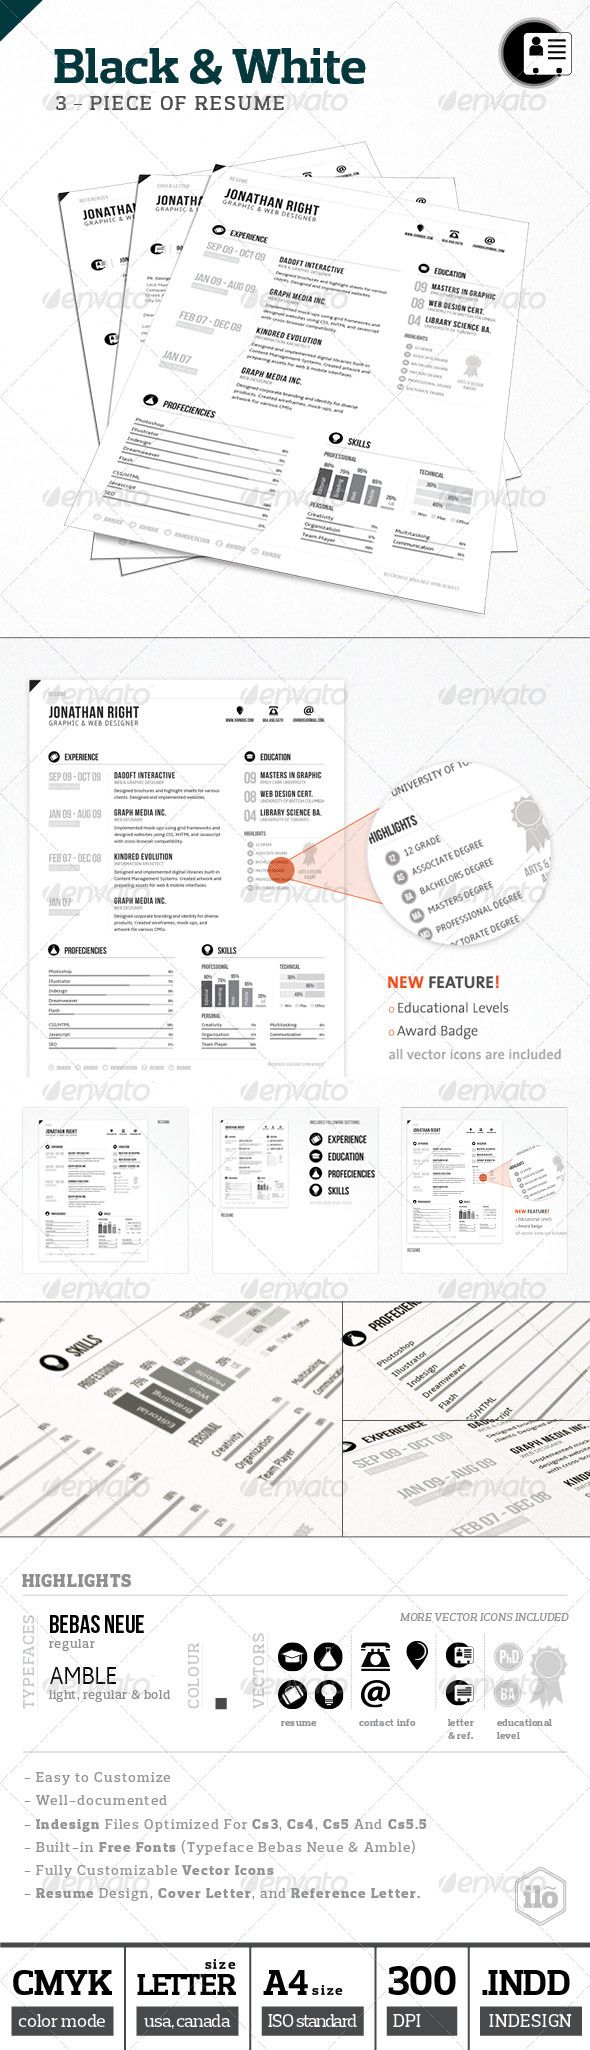 Black White Resume Cv Design Creative Cv And Design Resume